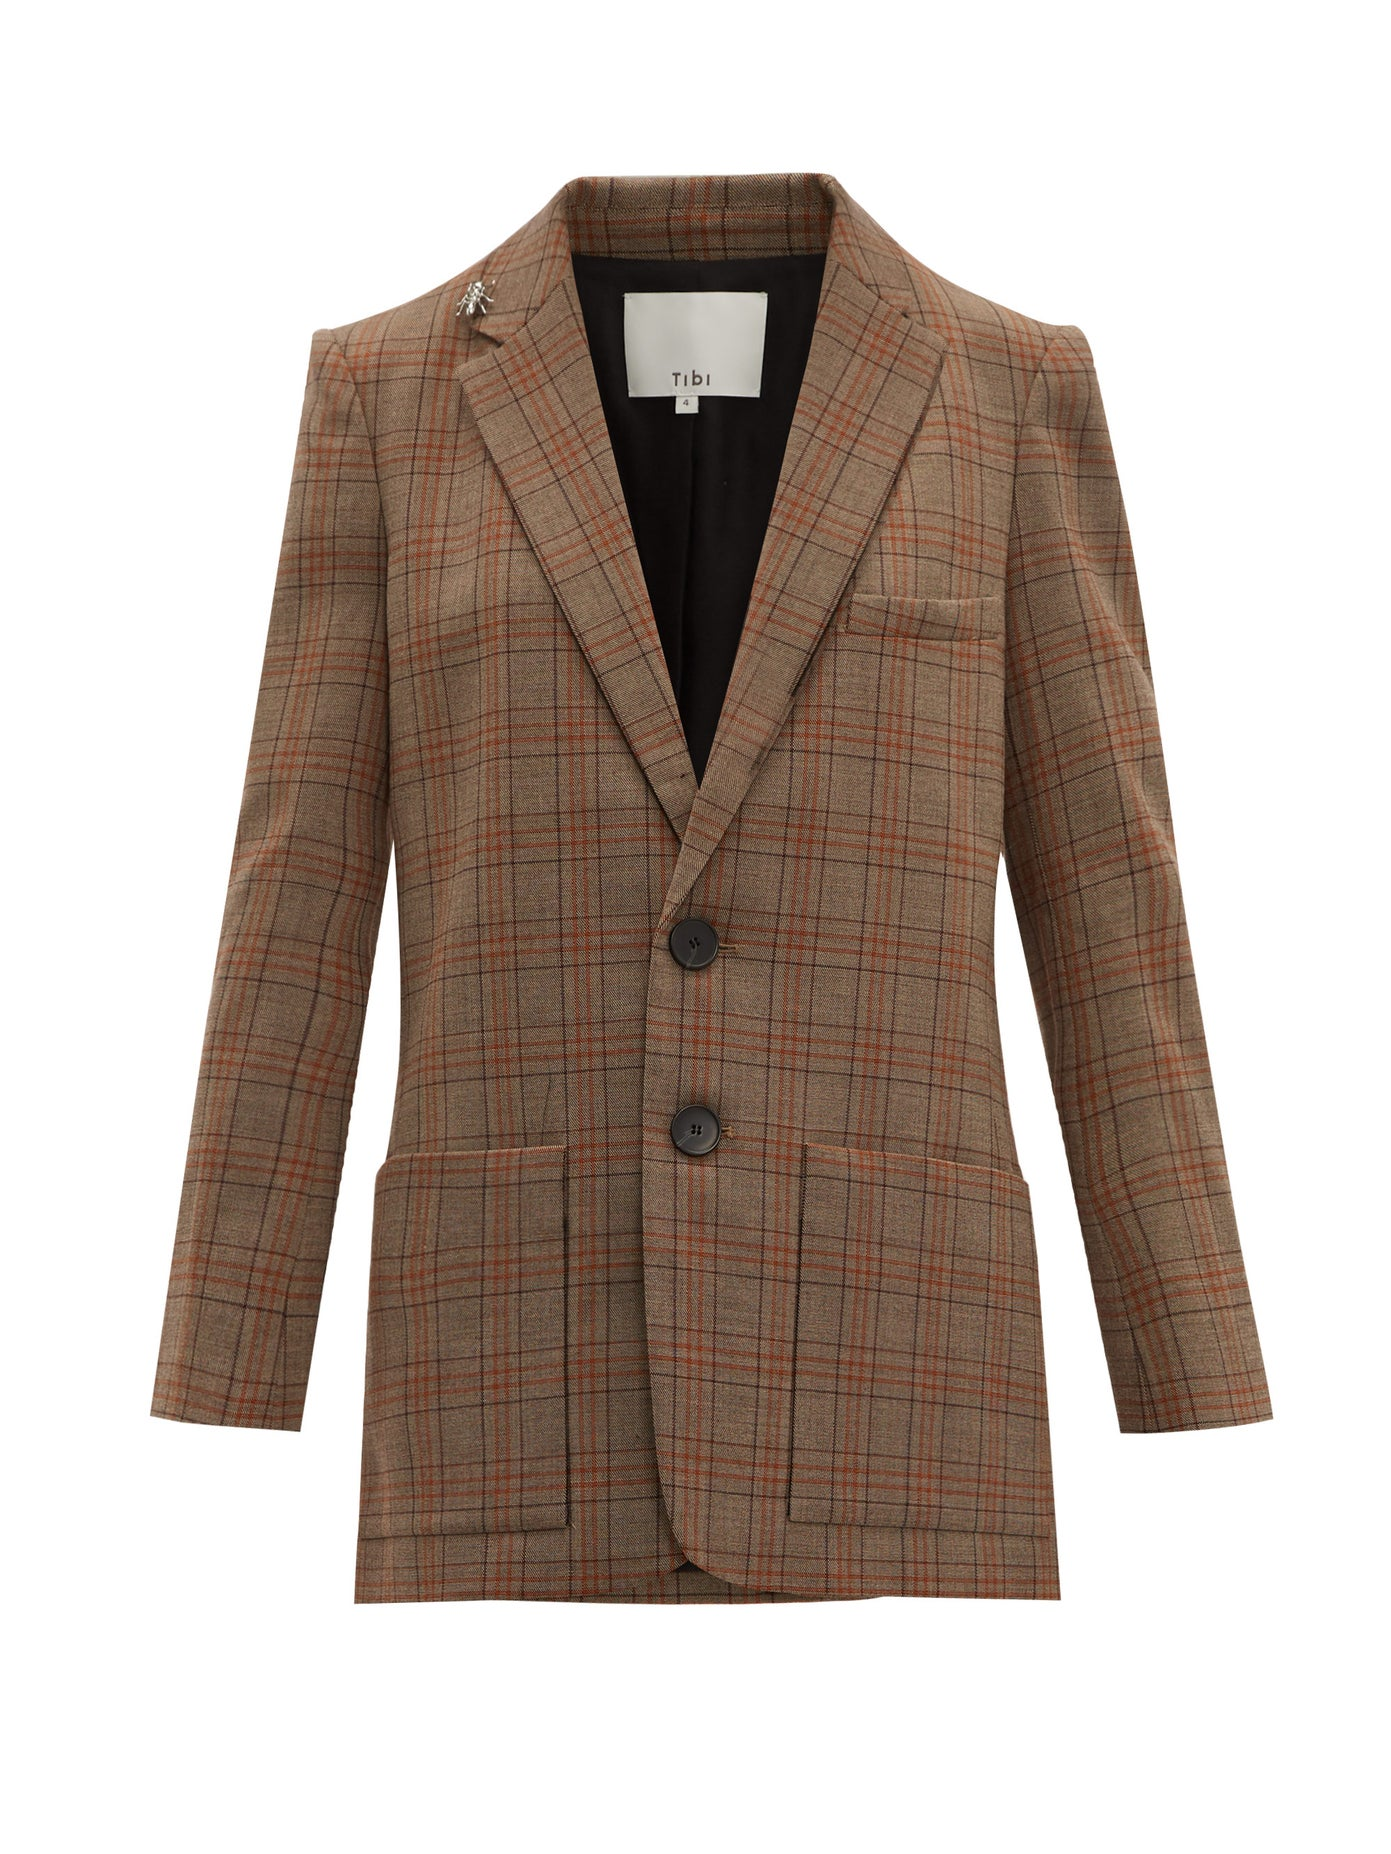 Tibi brown plaid blazer